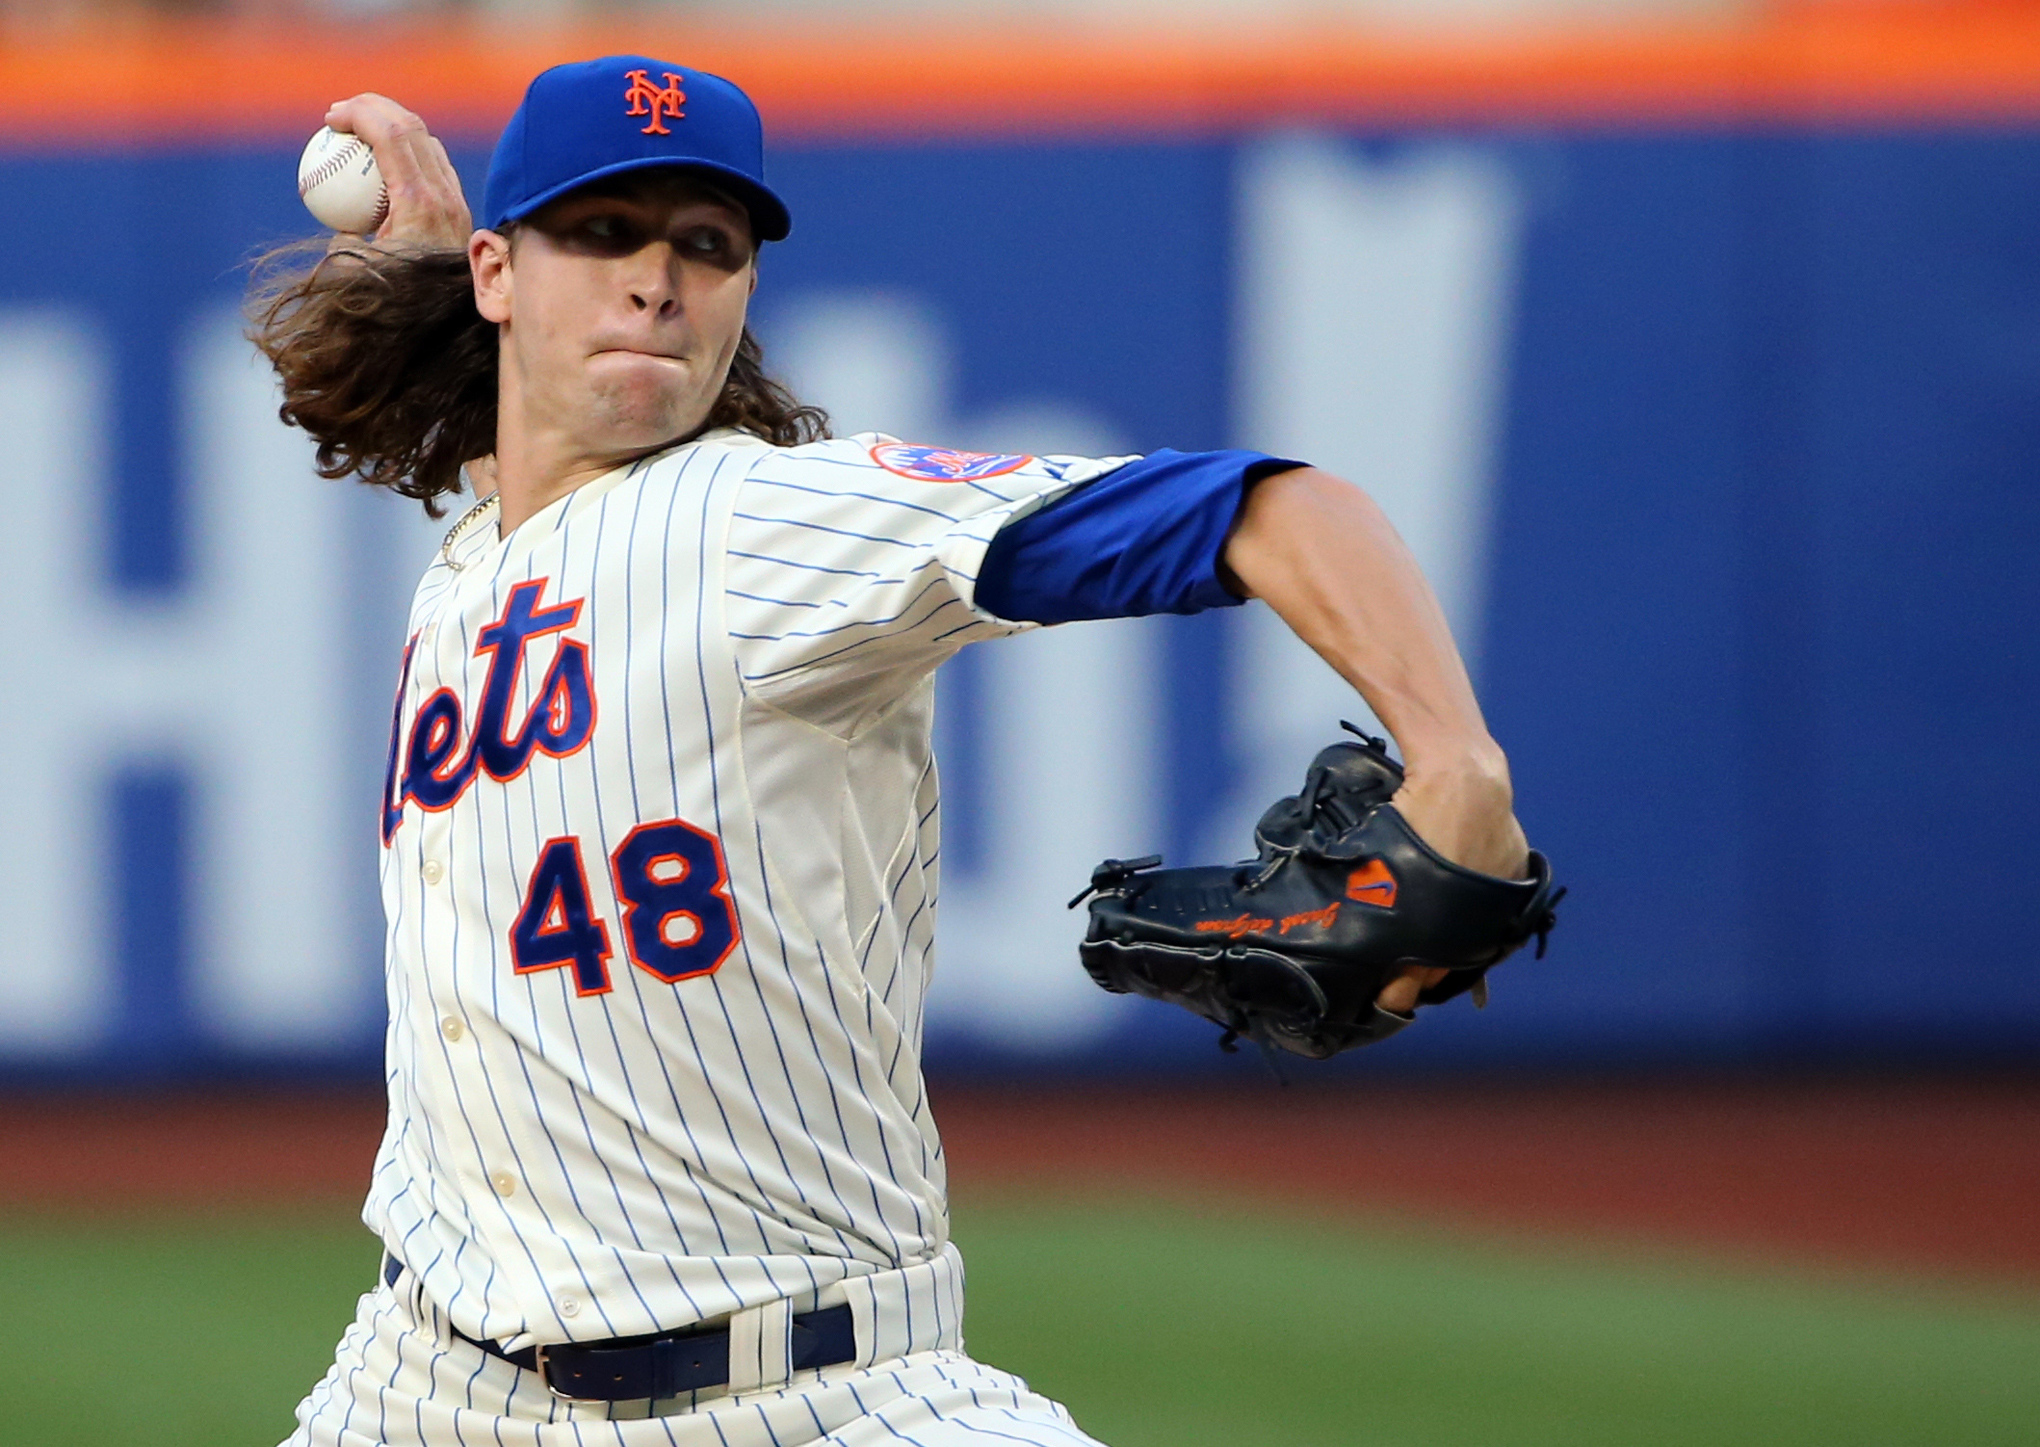 Jul 8, 2014; New York, NY, USA;  New York Mets starting pitcher Jacob deGrom (48) pitches during the first inning Atlanta Braves at Citi Field. Mandatory Credit: Anthony Gruppuso-USA TODAY Sports